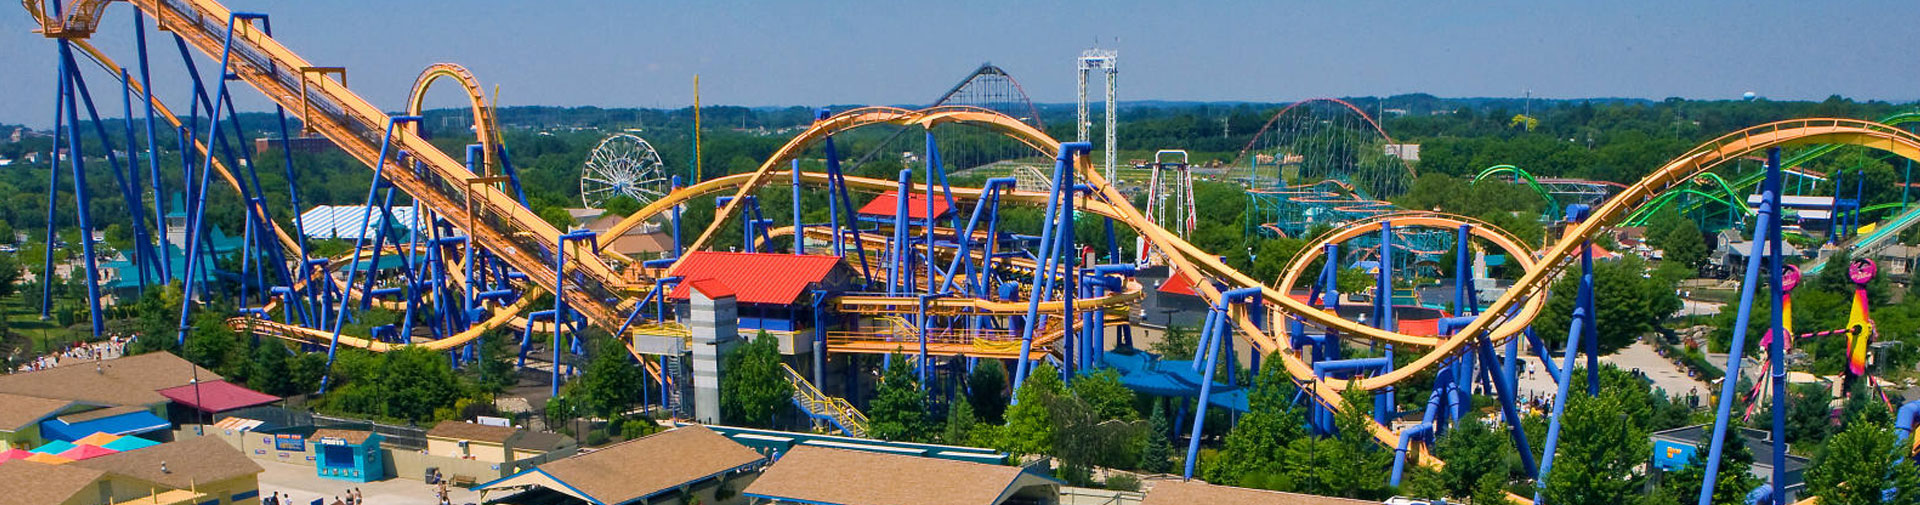 Dorney Park Frequently Asked Questions